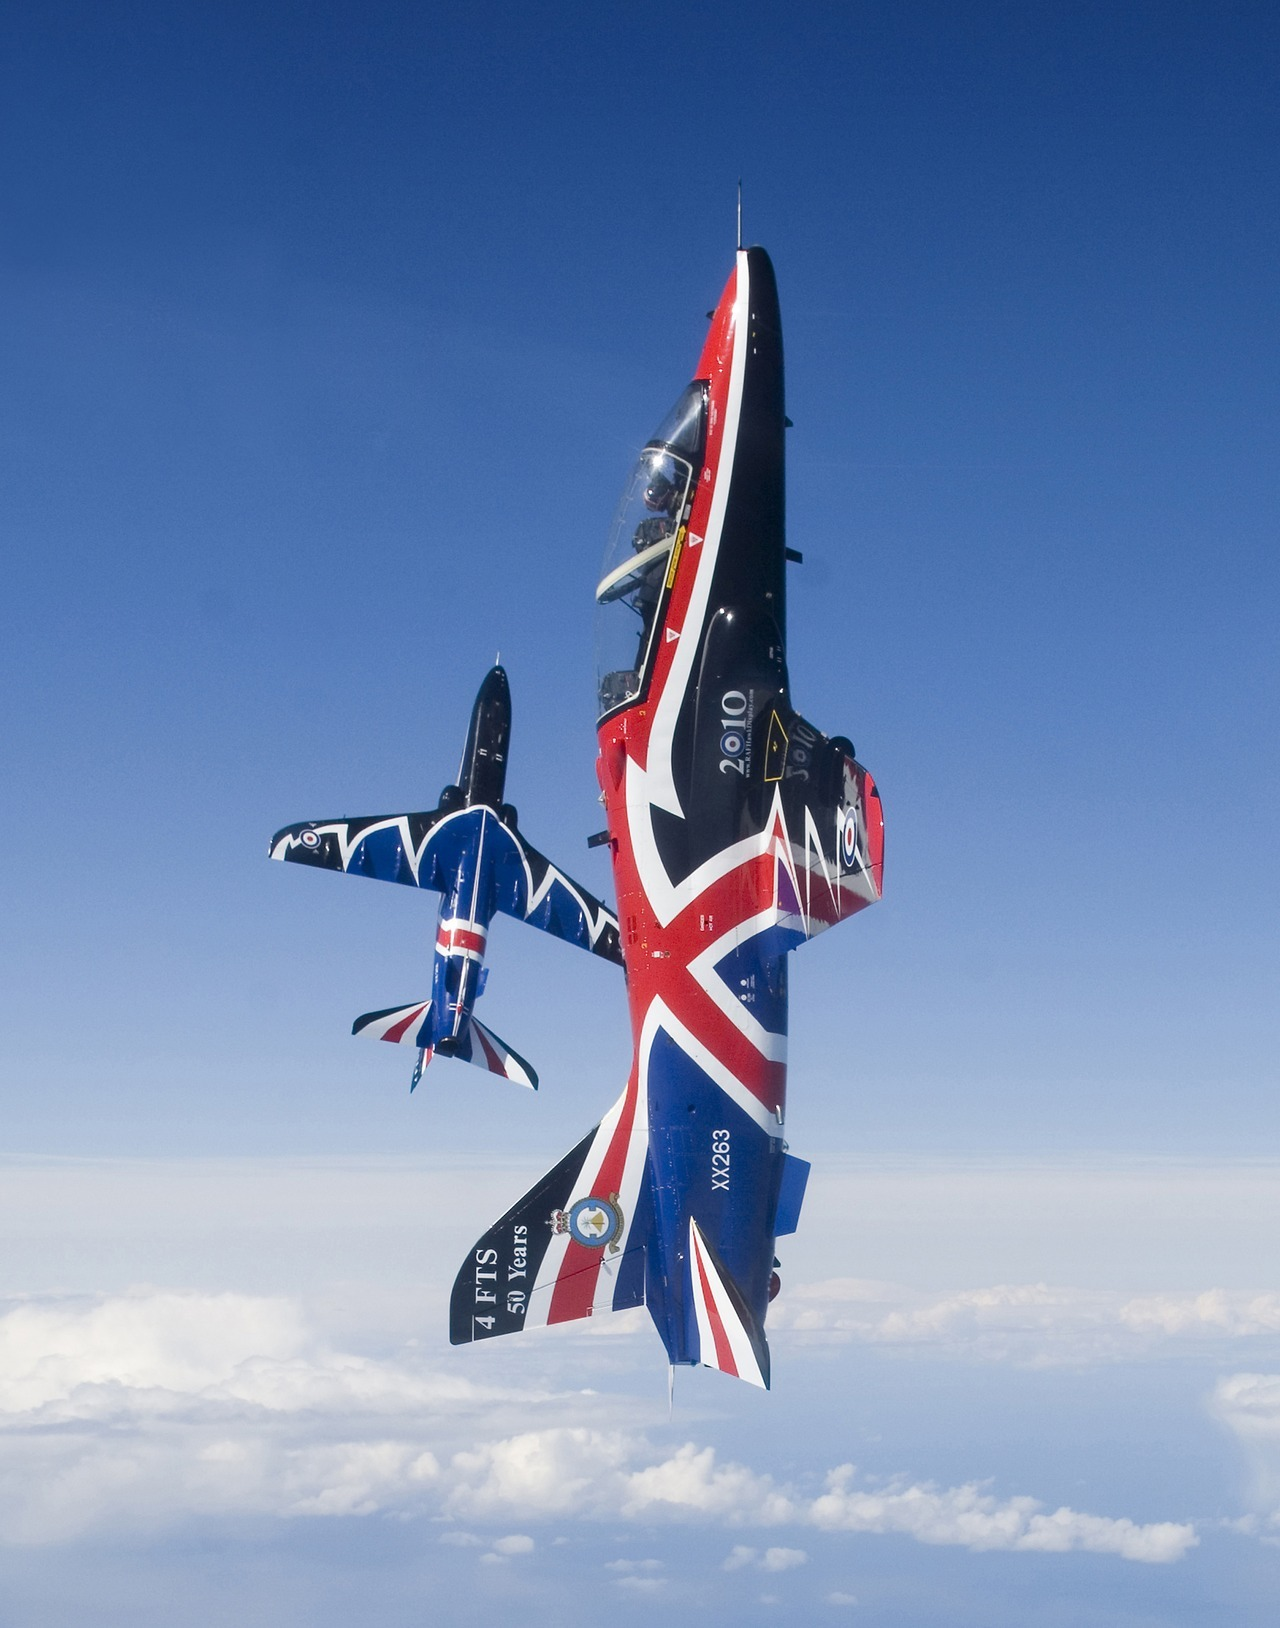 Two aerobatic Hawk T1 jet aircraft are pictured in the livery for the 2010 display season. The jets belong to 208 Squadron, Royal Air Force and are based at RAF Valley on the Isle of Anglesey, Wales.